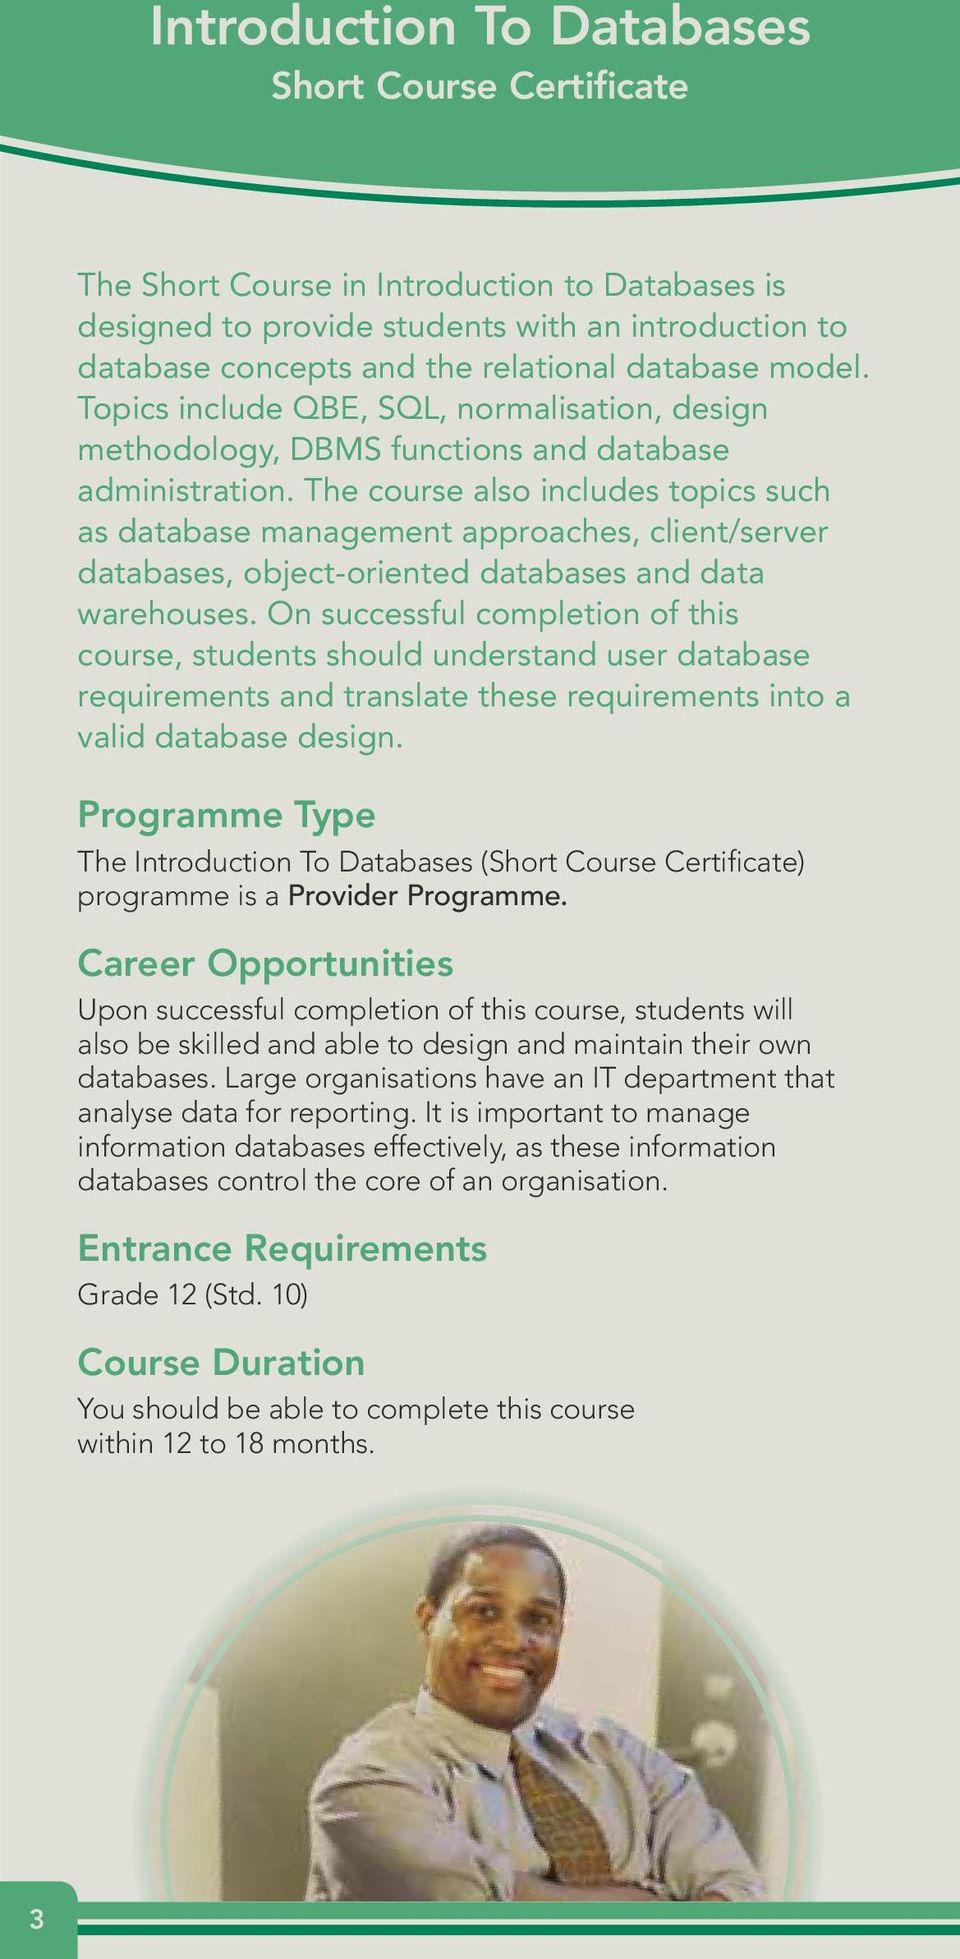 The course also includes topics such as database management approaches, client/server databases, object-oriented databases and data warehouses.